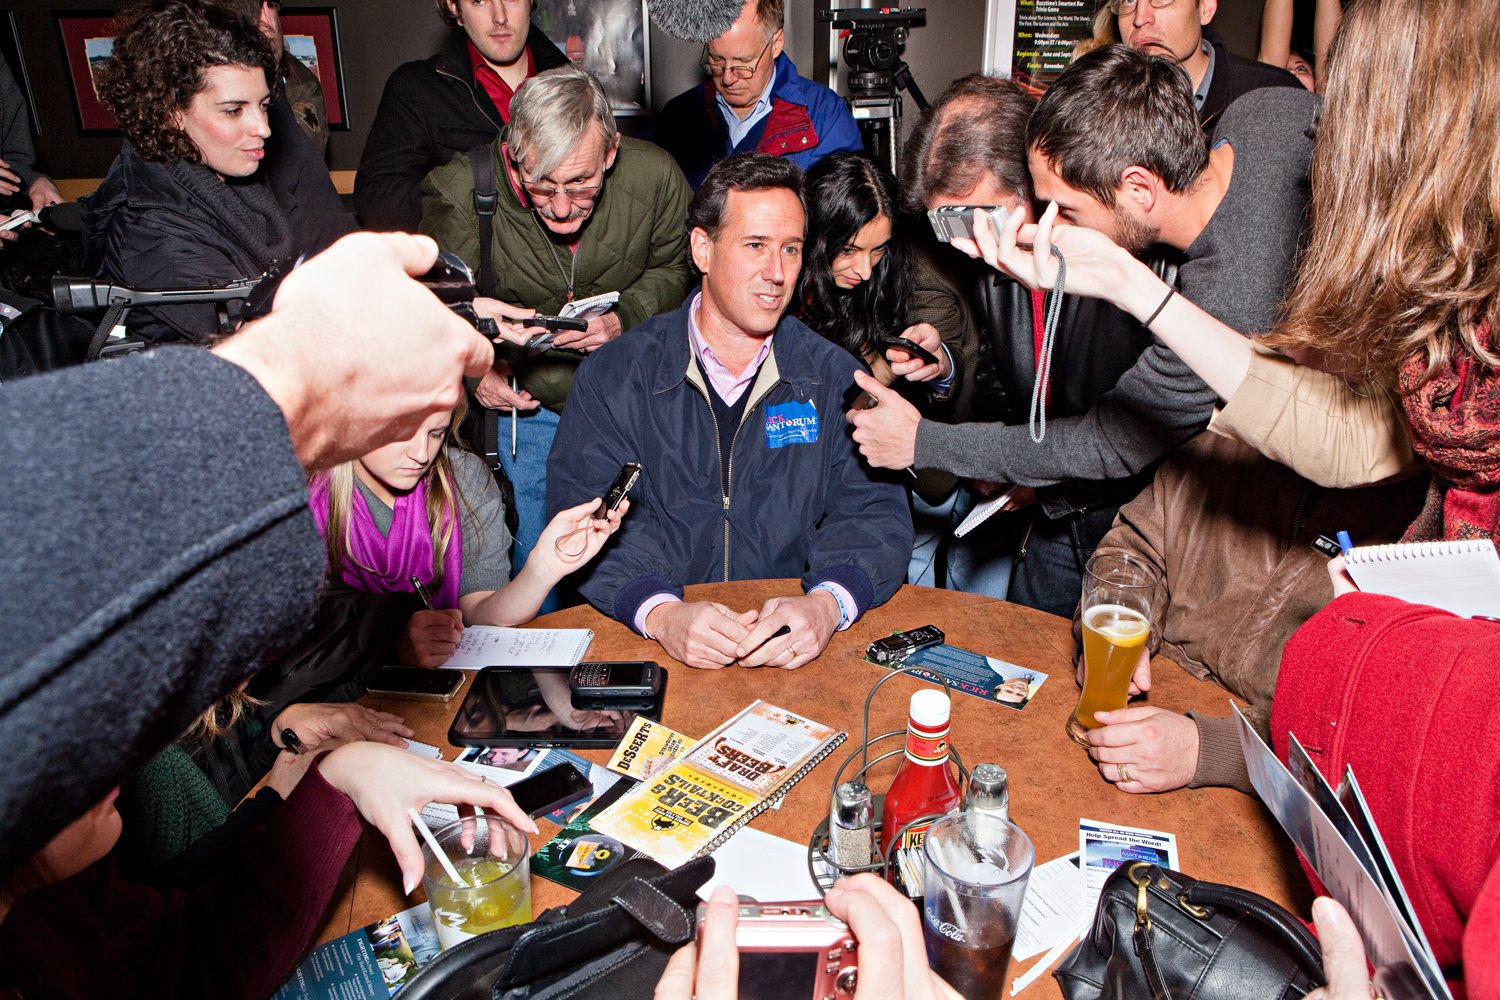 The press questions Rick Santorum as he campaigns at Buffalo Wild Wings in Ames, Iowa on December 30, 2011.